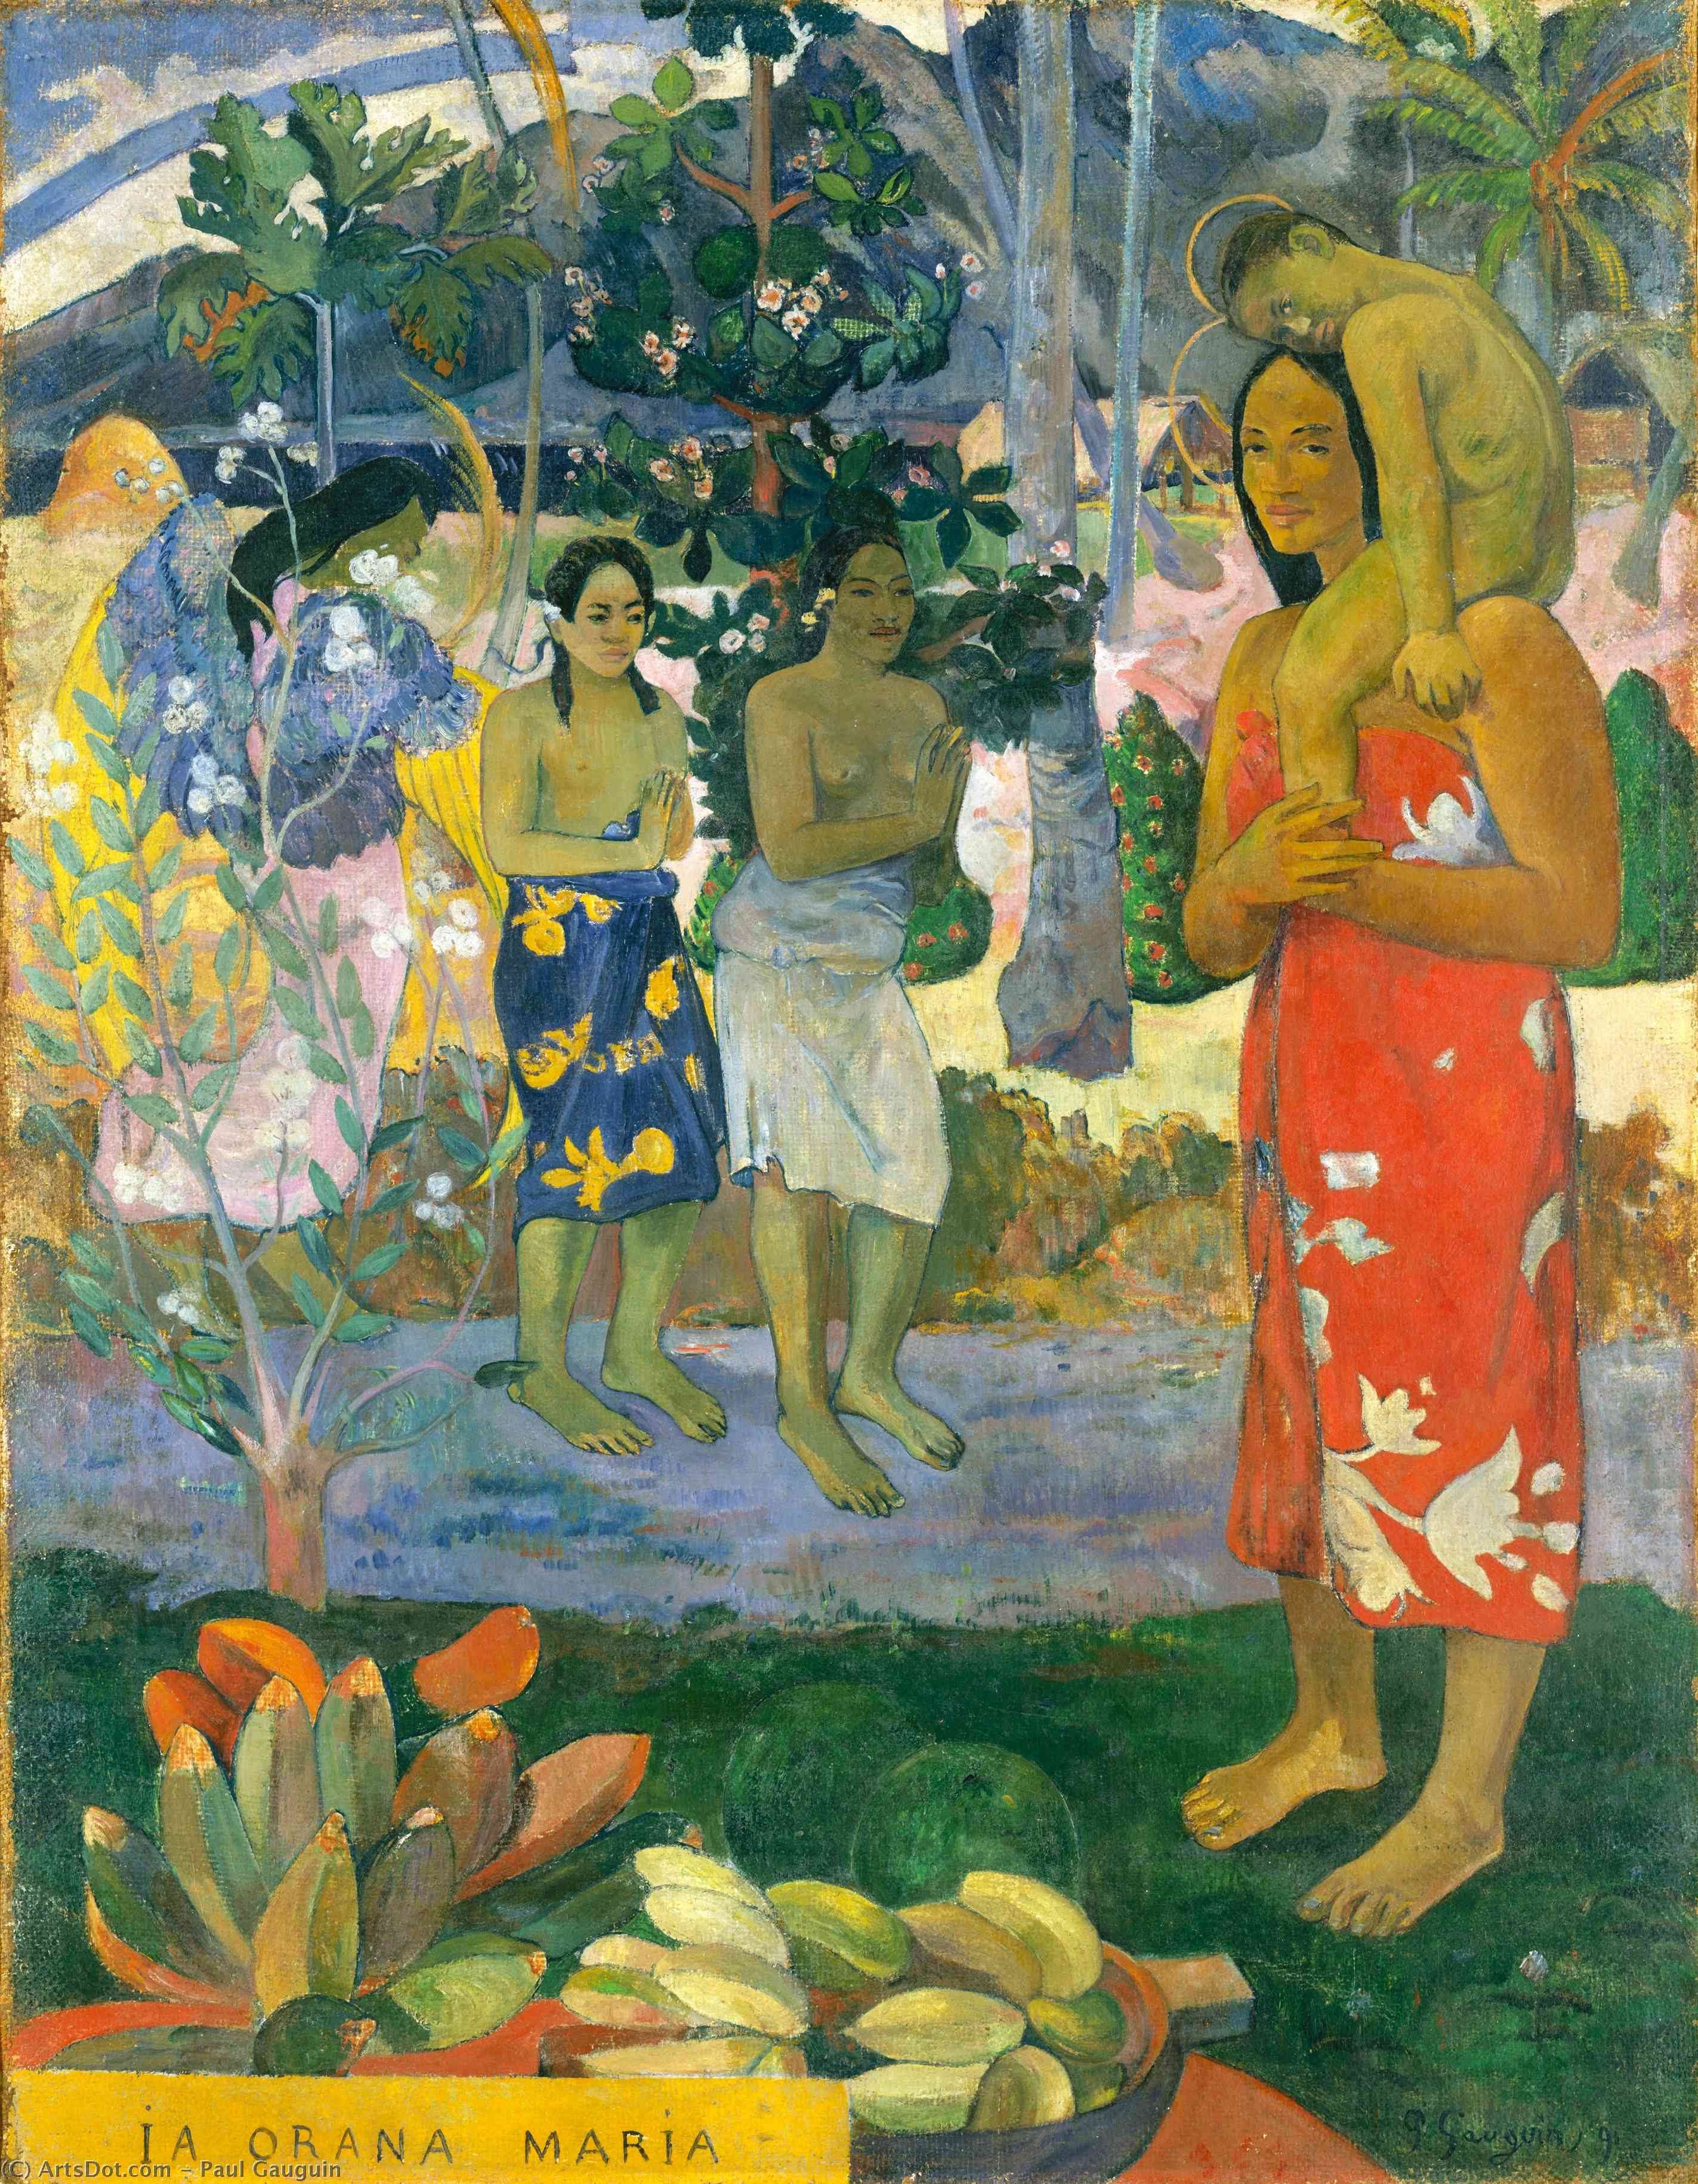 Wikioo.org - The Encyclopedia of Fine Arts - Painting, Artwork by Paul Gauguin - Ia Orana Maria (also known as Hail Mary)